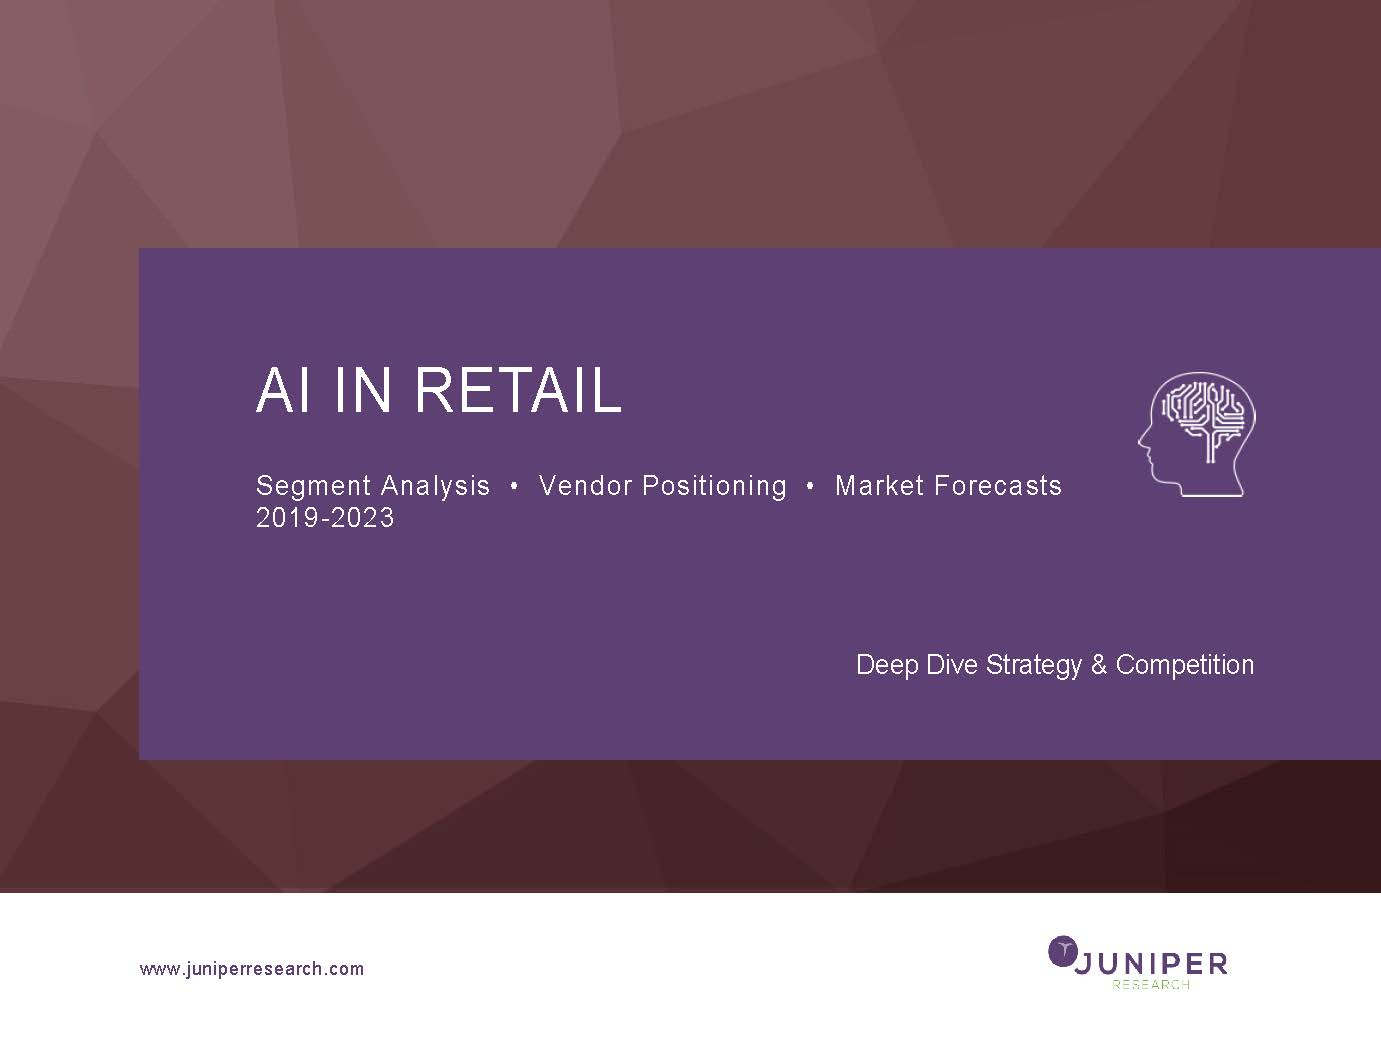 AI in Retail: Deep Dive Strategy 2019-2023